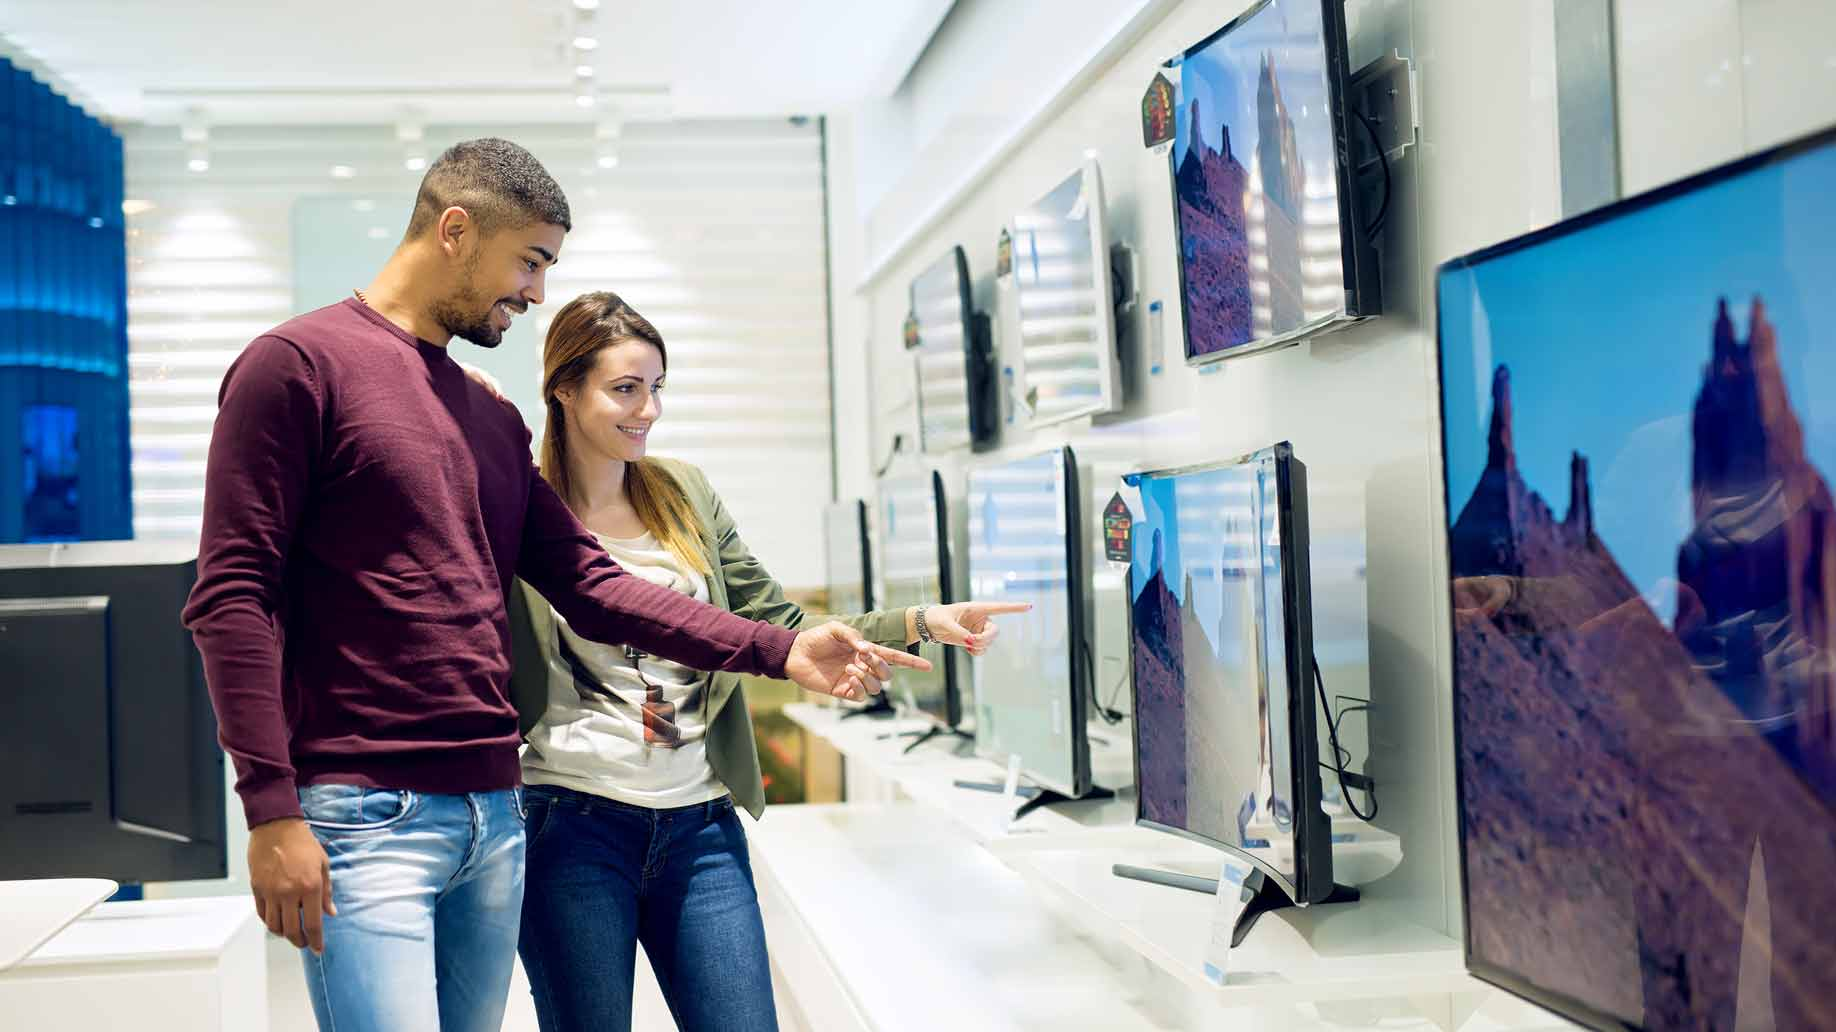 couple shopping for new flat screen television